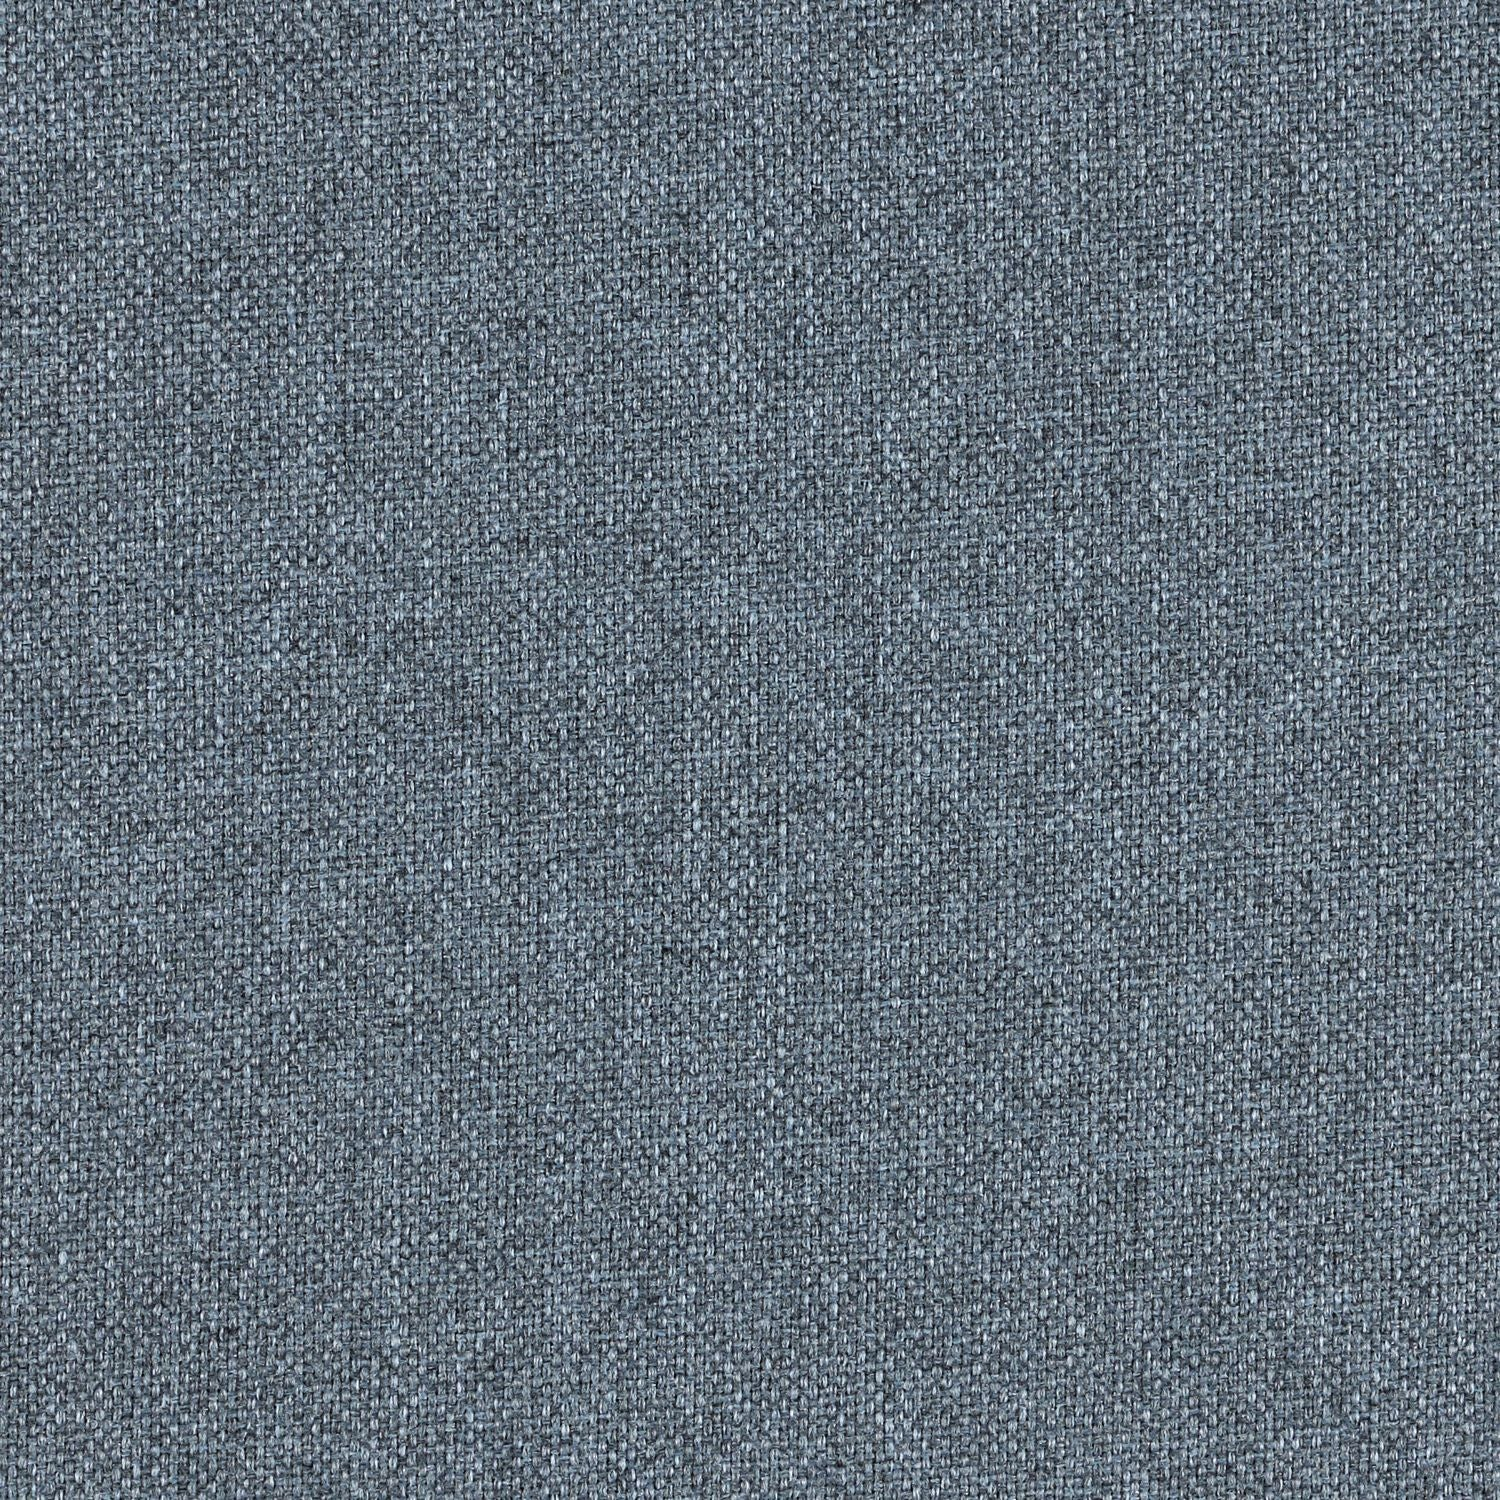 Backdrop - Blue Filter - 1027 - 08 - Half Yard